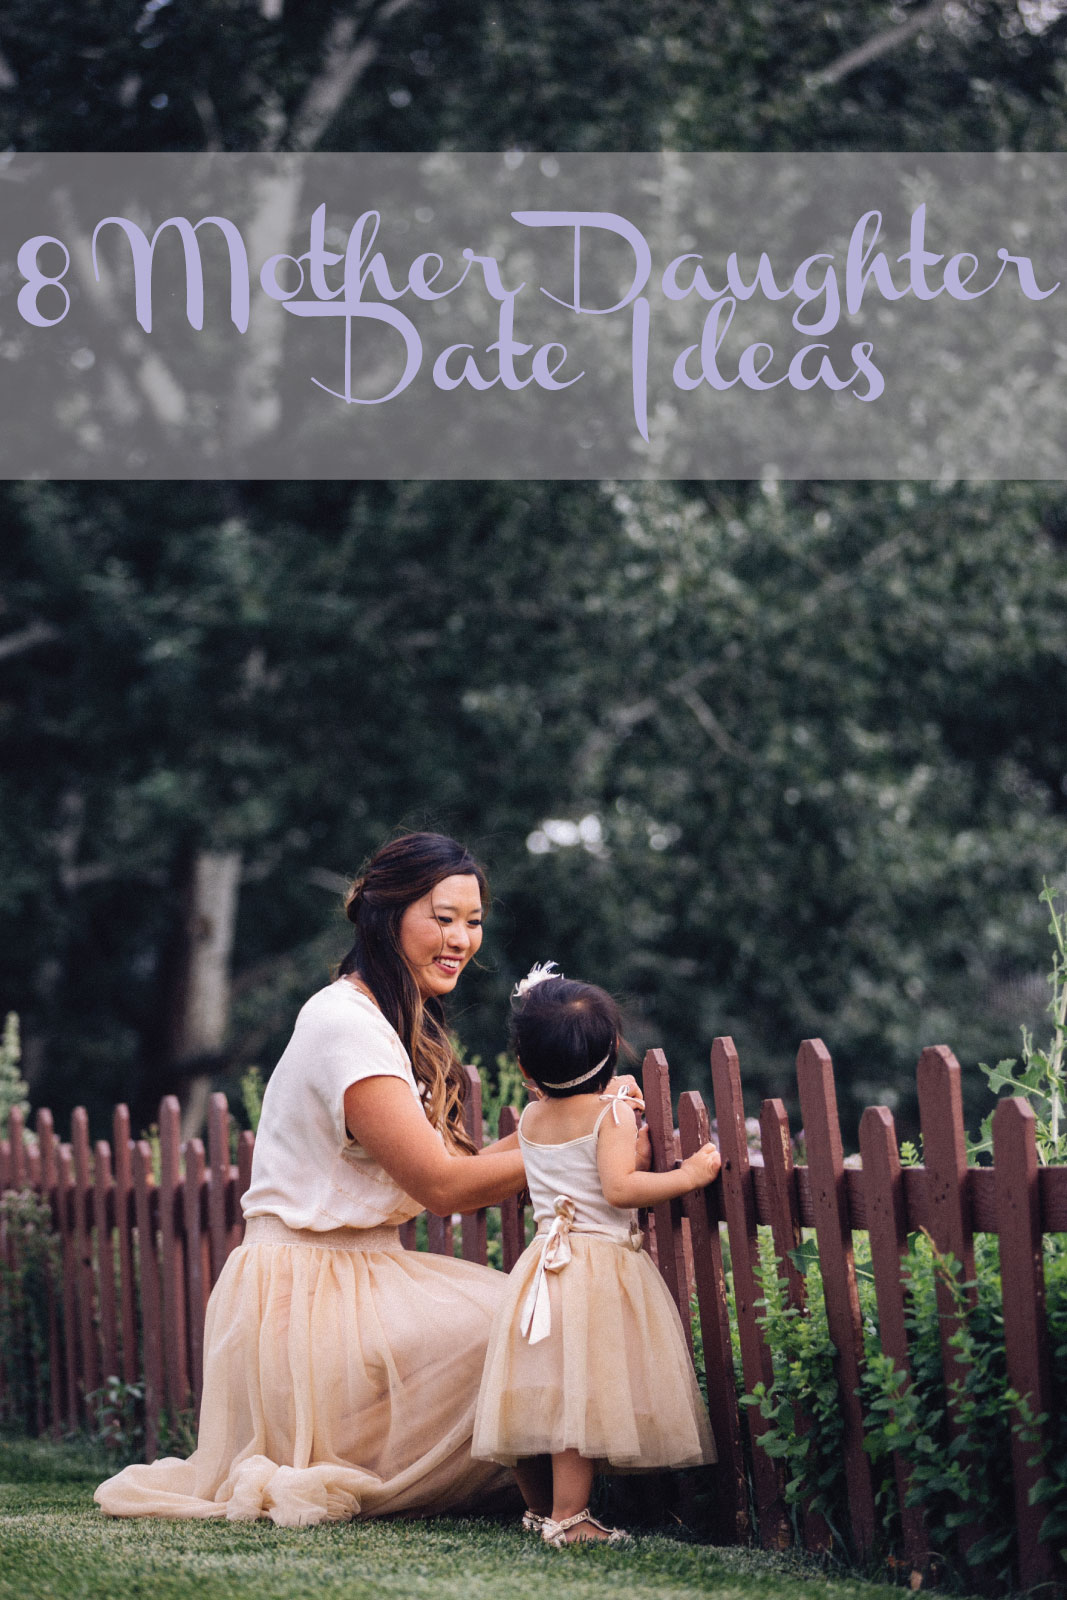 8 Mother Daughter Date Ideas